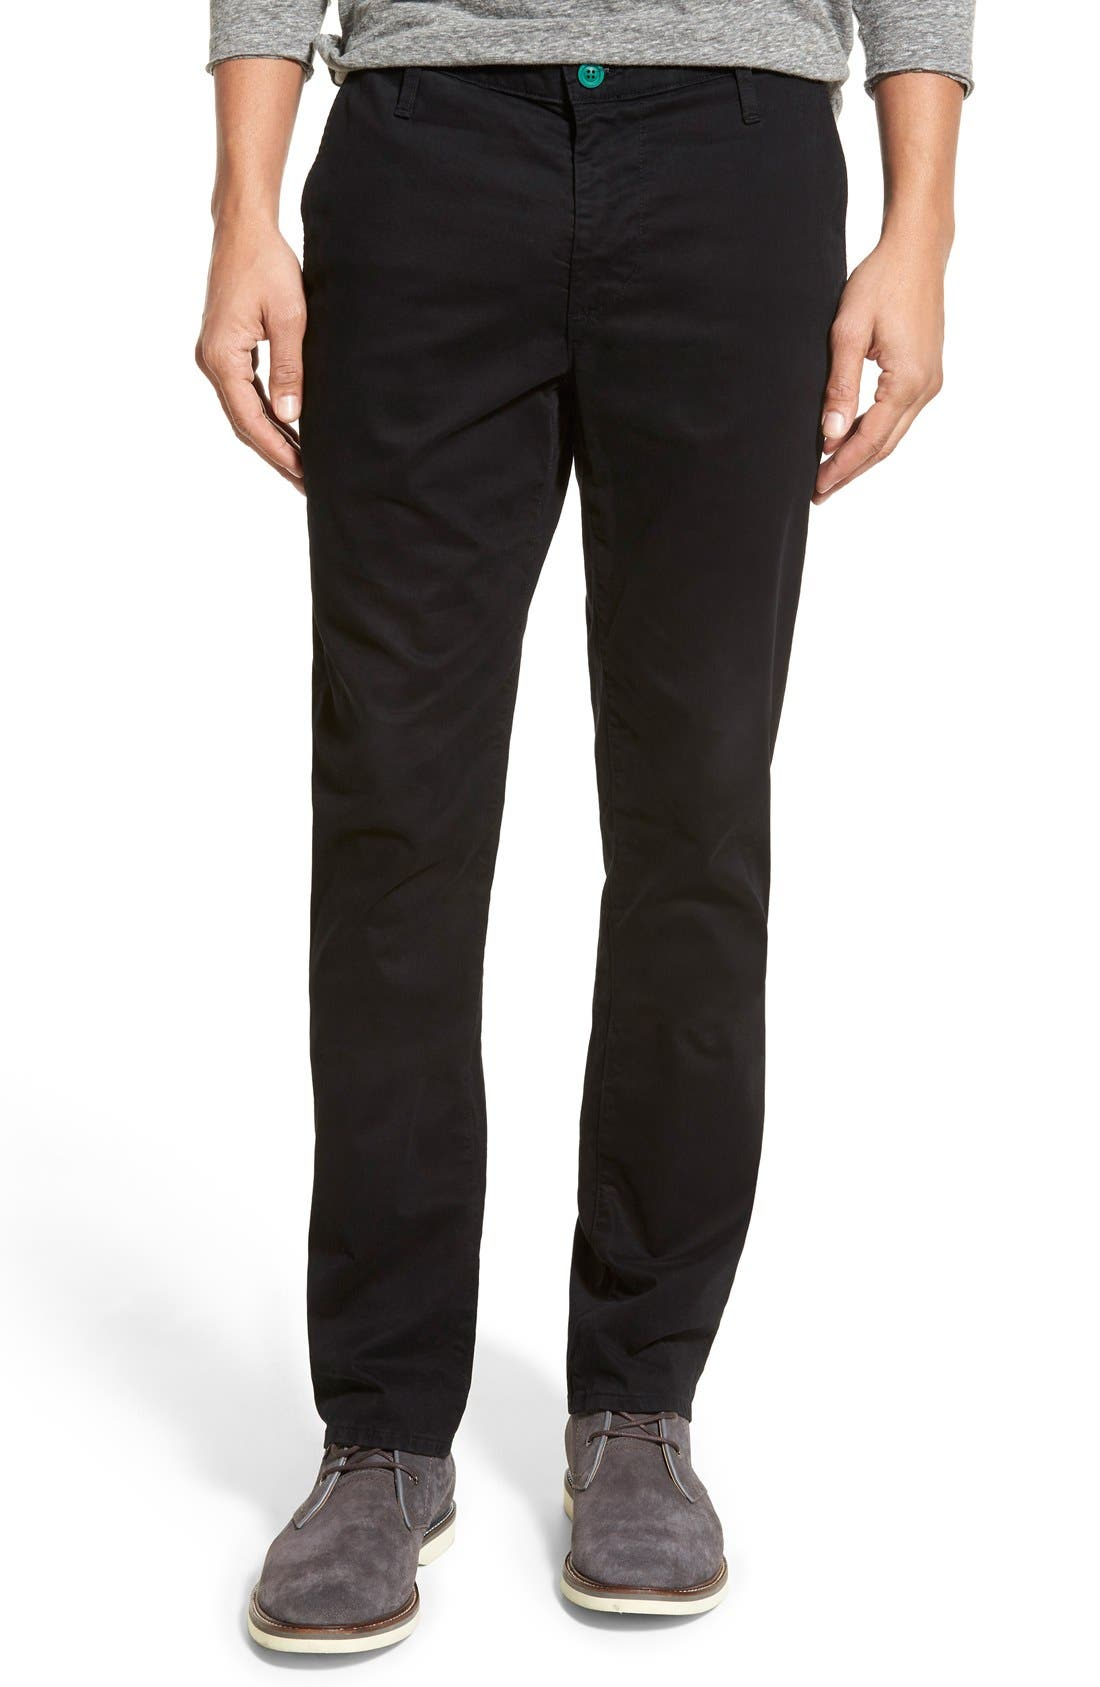 AG Green Label 'Graduate' Slim Straight Leg Golf